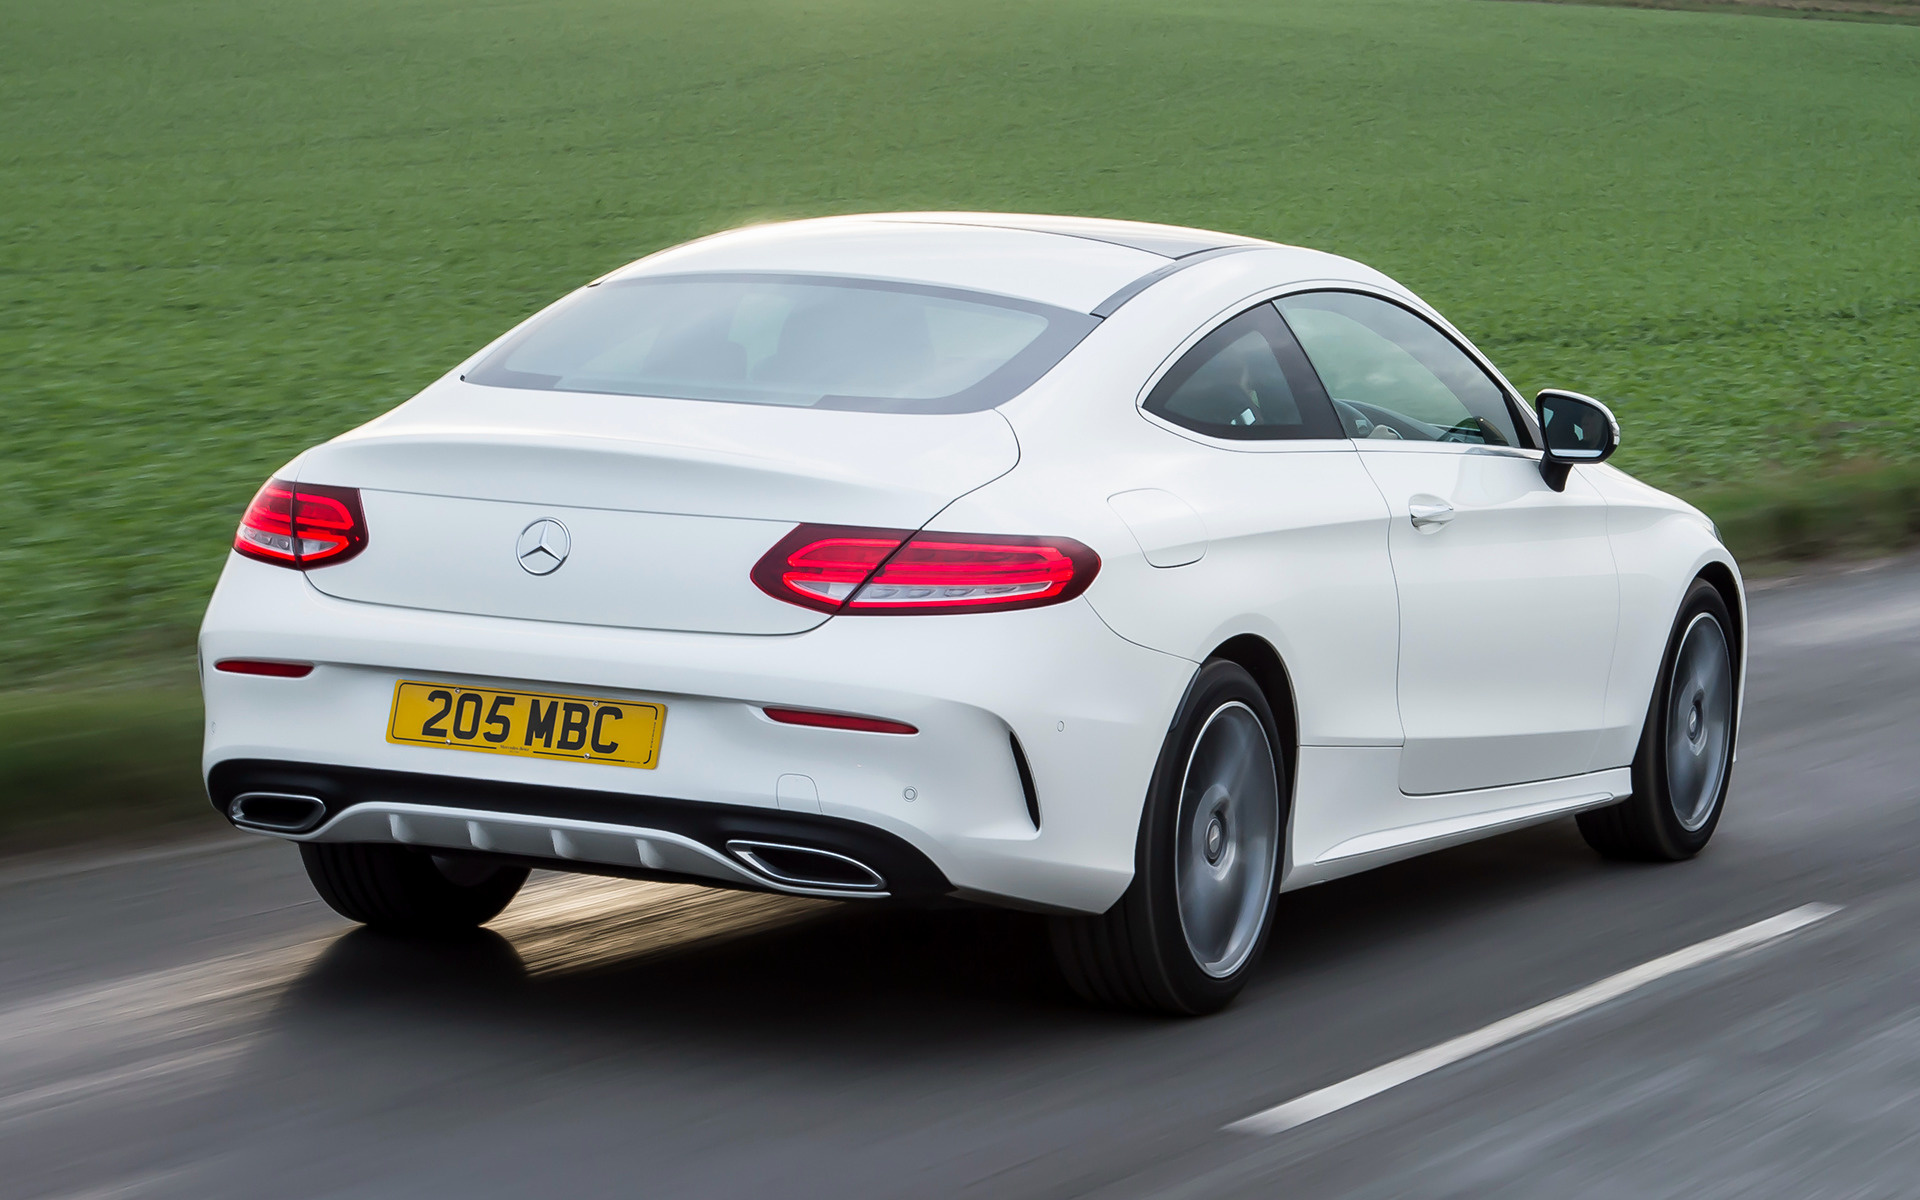 Mercedes benz c class coupe amg line 2015 uk wallpapers for Mercedes benz c class sedan